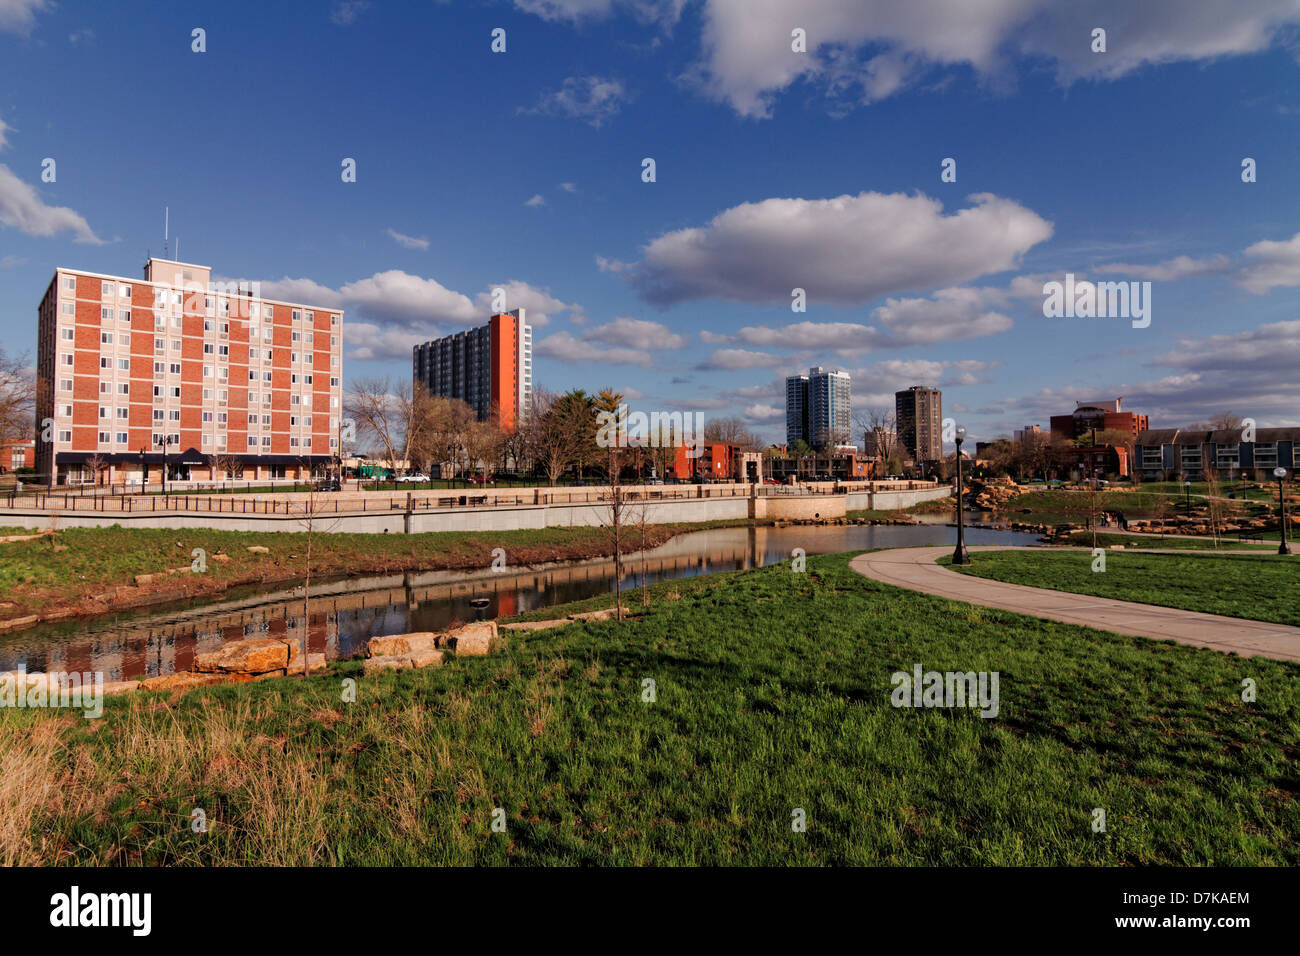 New Apartment buildings in Urbana, IL - Stock Image